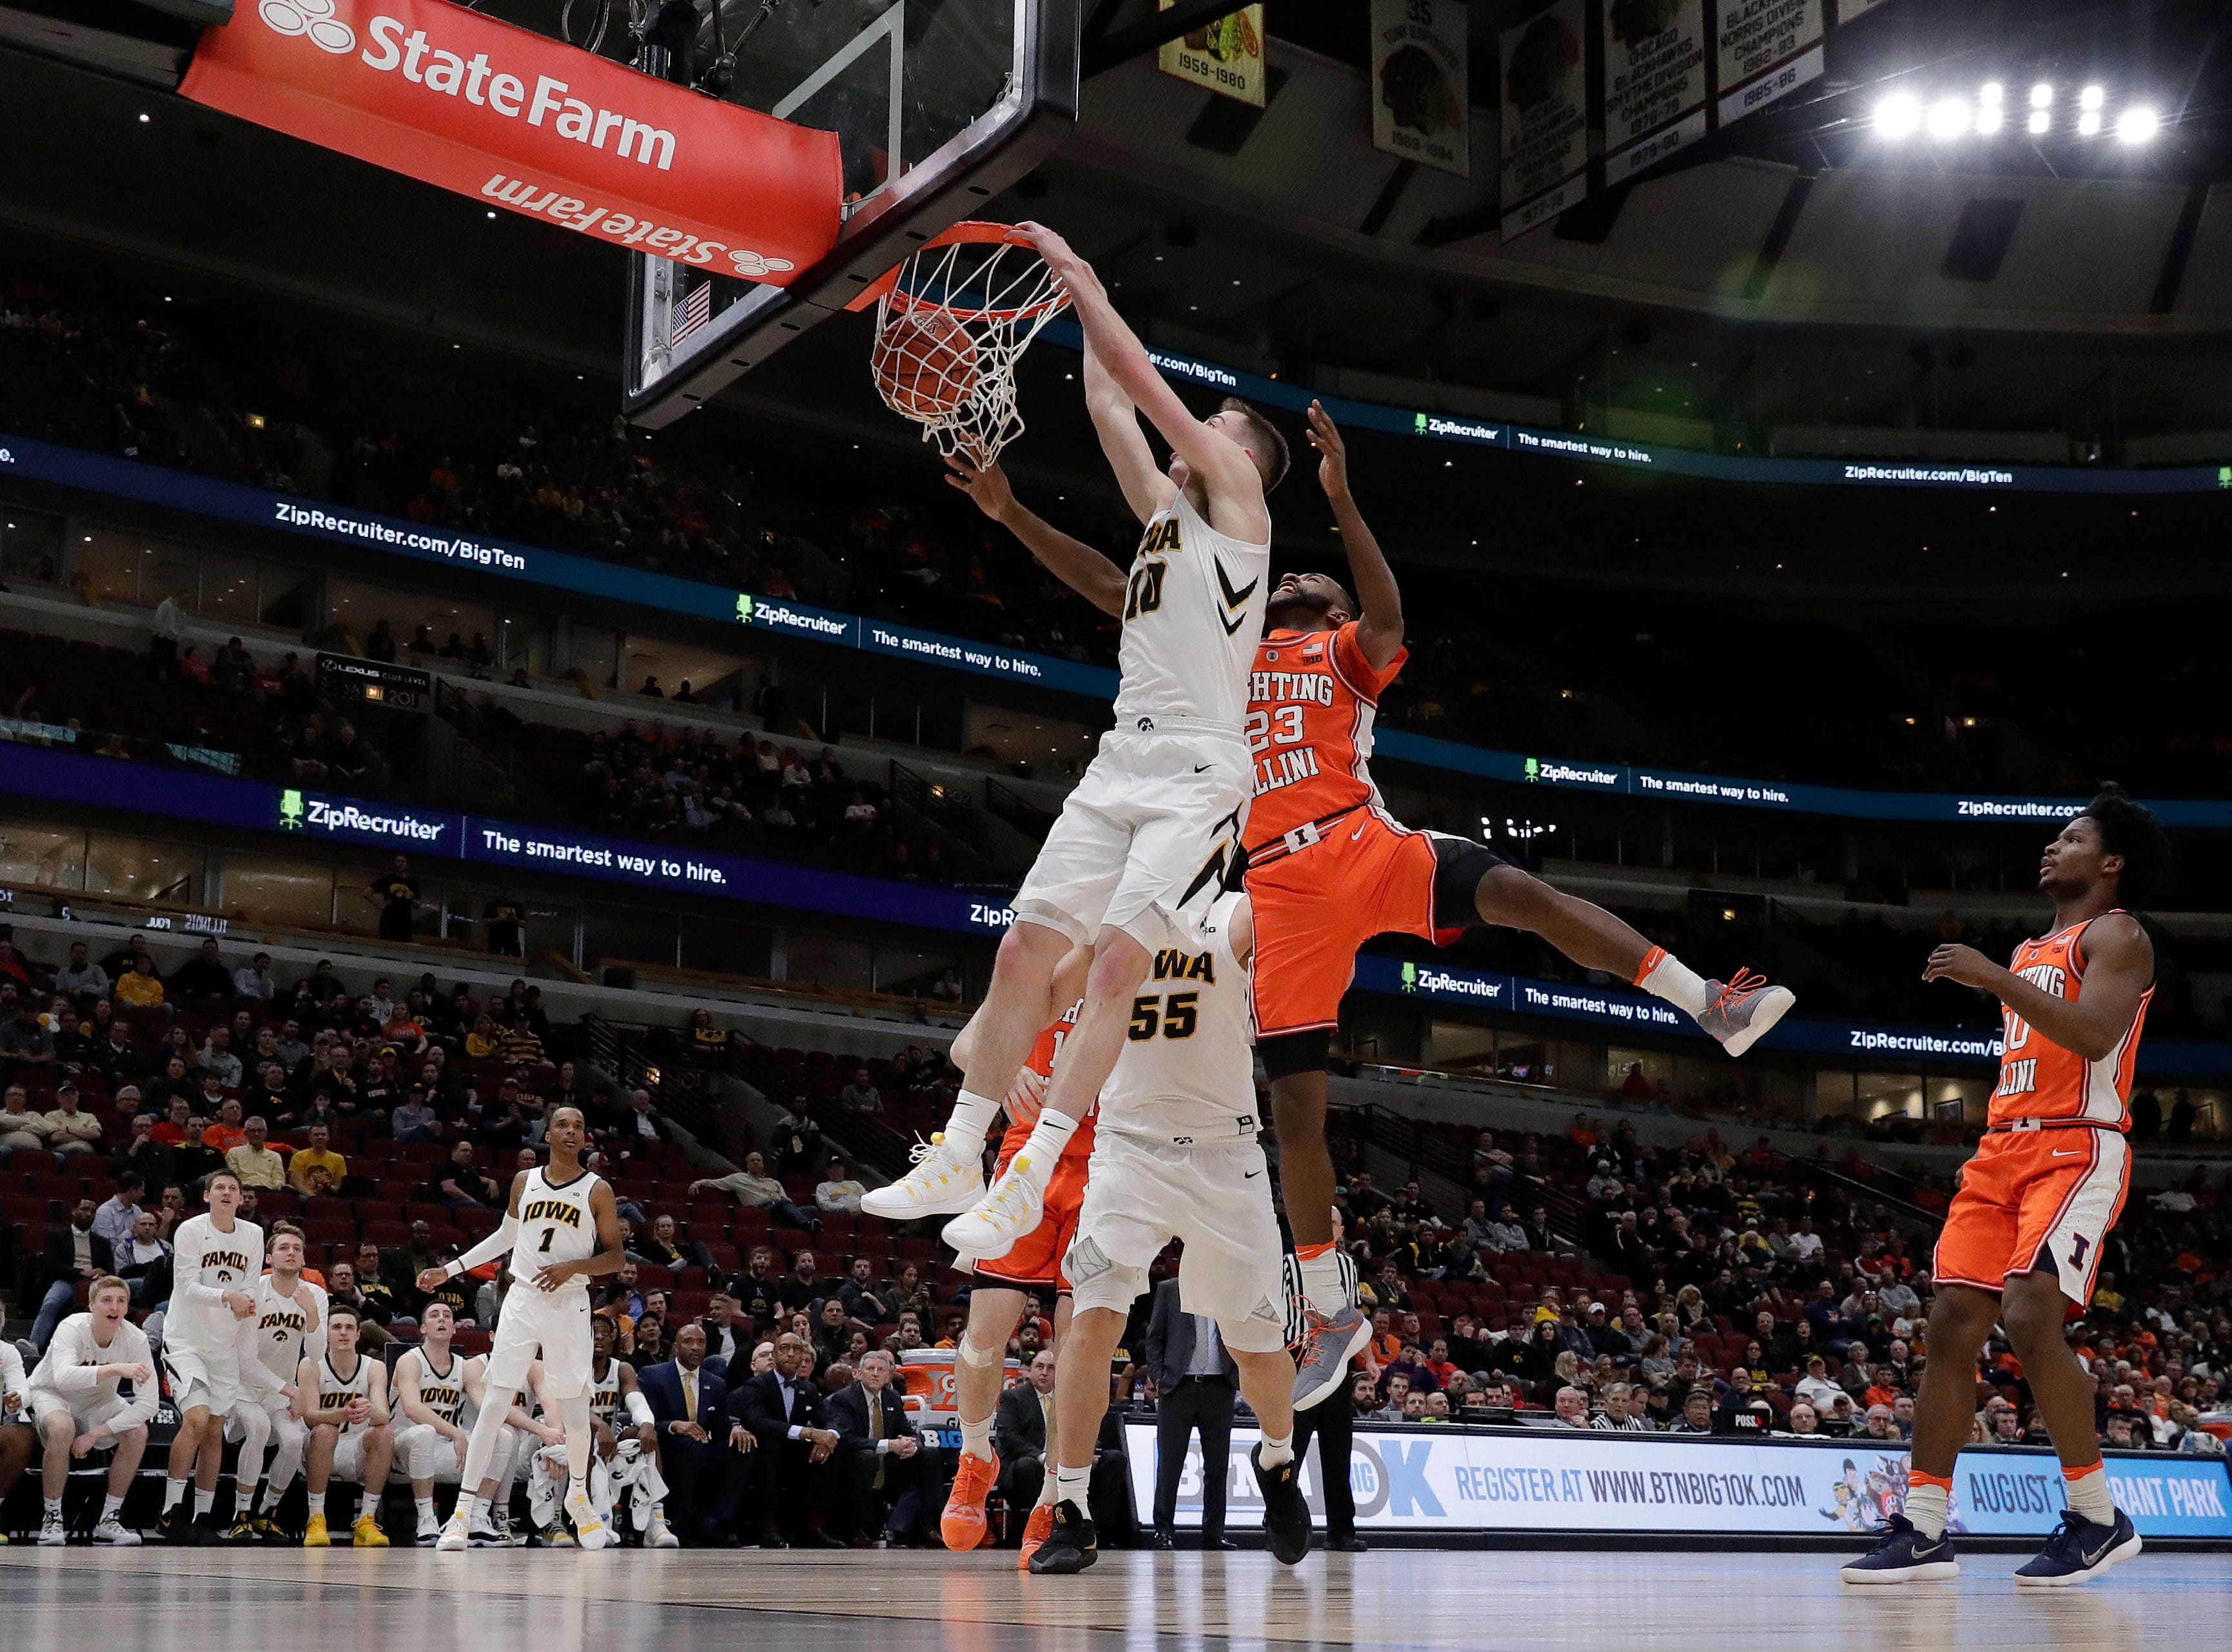 Iowa's Joe Wieskamp (10) dunks against Illinois's Aaron Jordan (23) during the second half of an NCAA college basketball game in the second round of the Big Ten Conference tournament, Thursday, March 14, 2019, in Chicago.